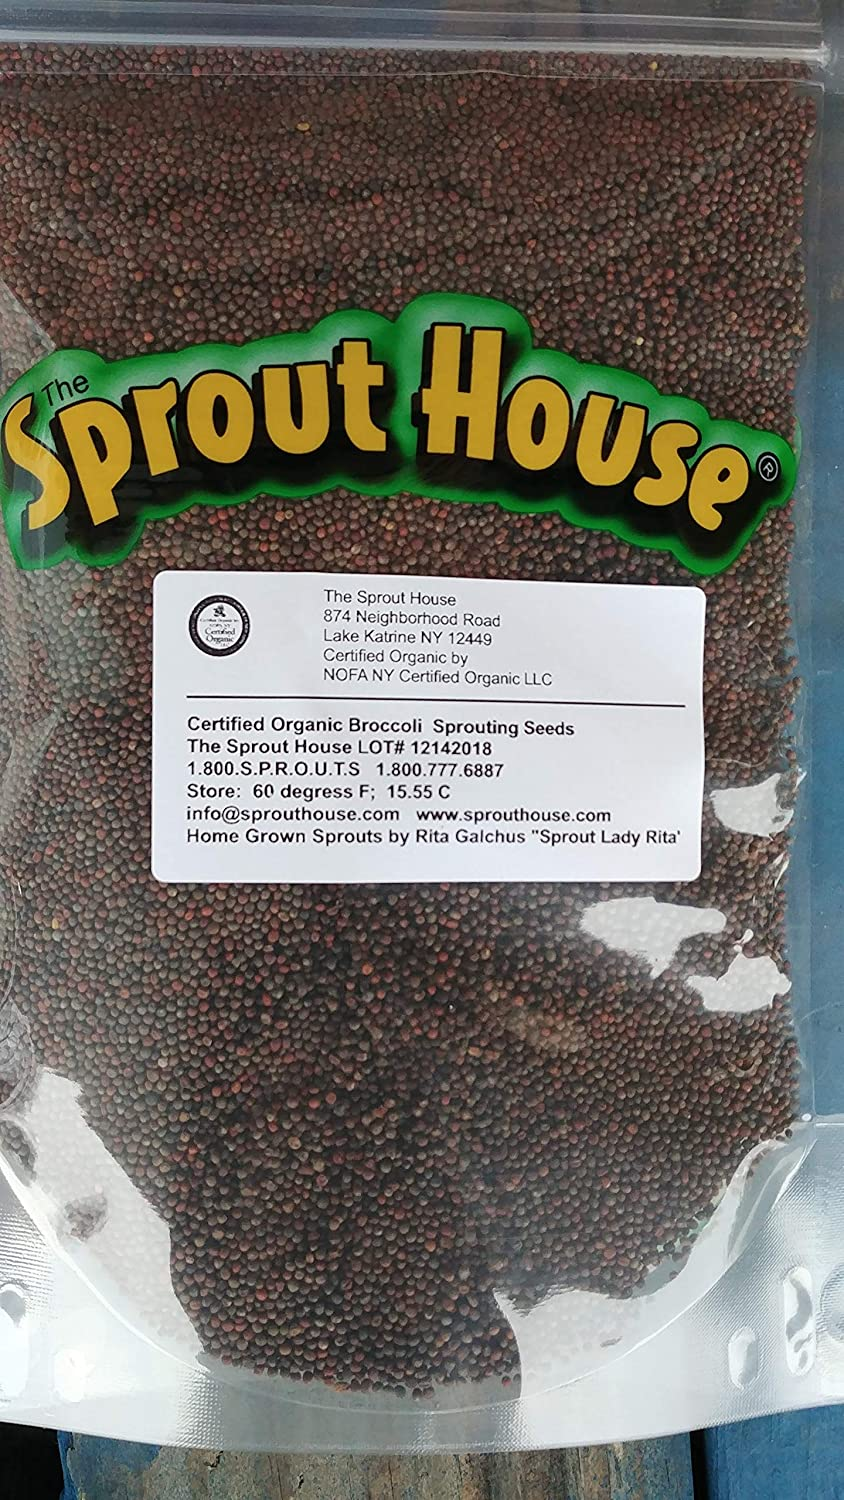 The Sprout House Certified Organic Non-GMO Sprouting Seeds Broccoli 1 Pound